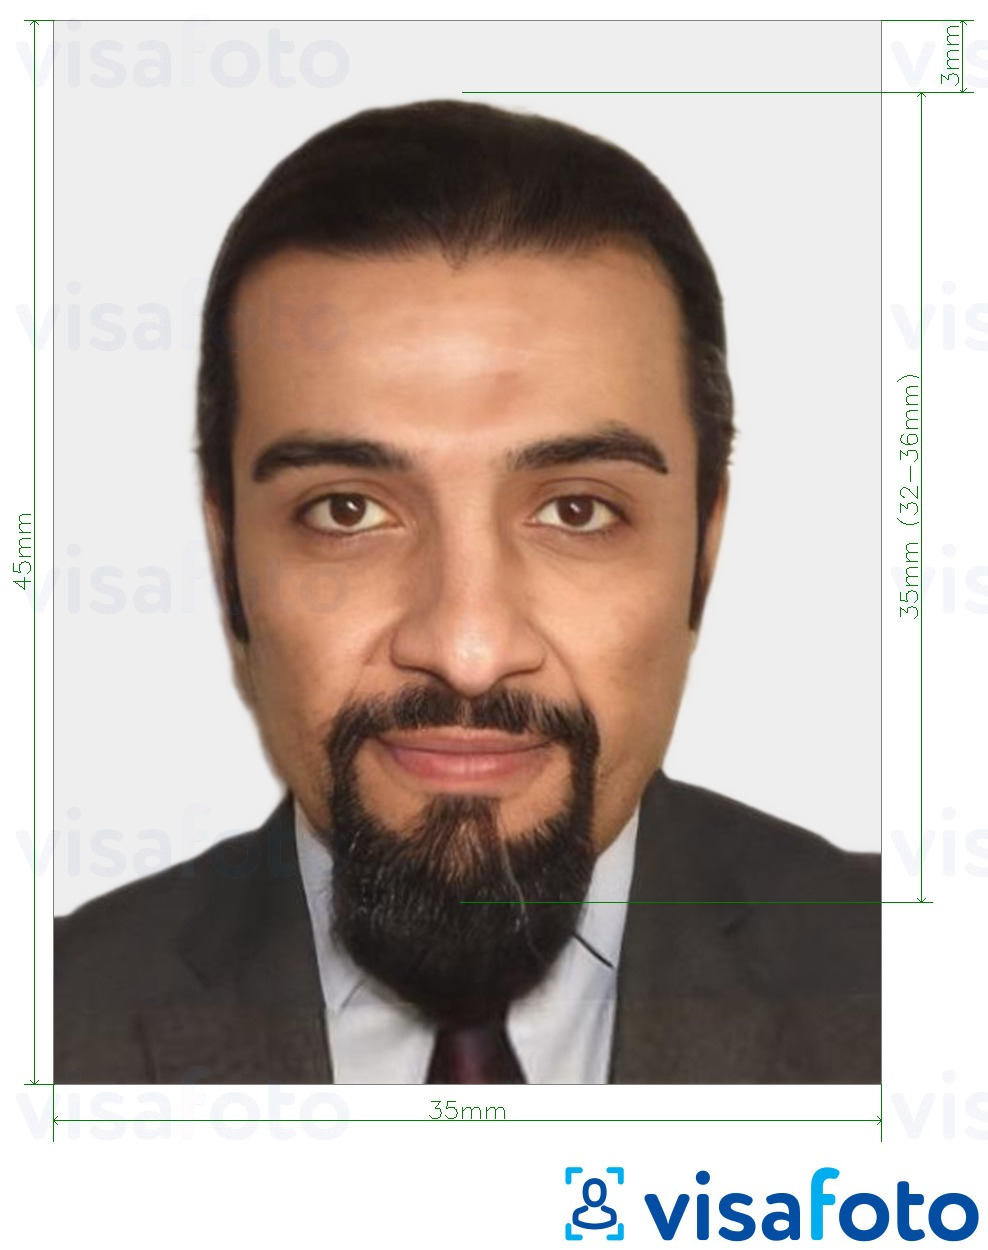 Example of photo for Morocco passport 35x45 mm (3.5x4.5 cm) with exact size specification